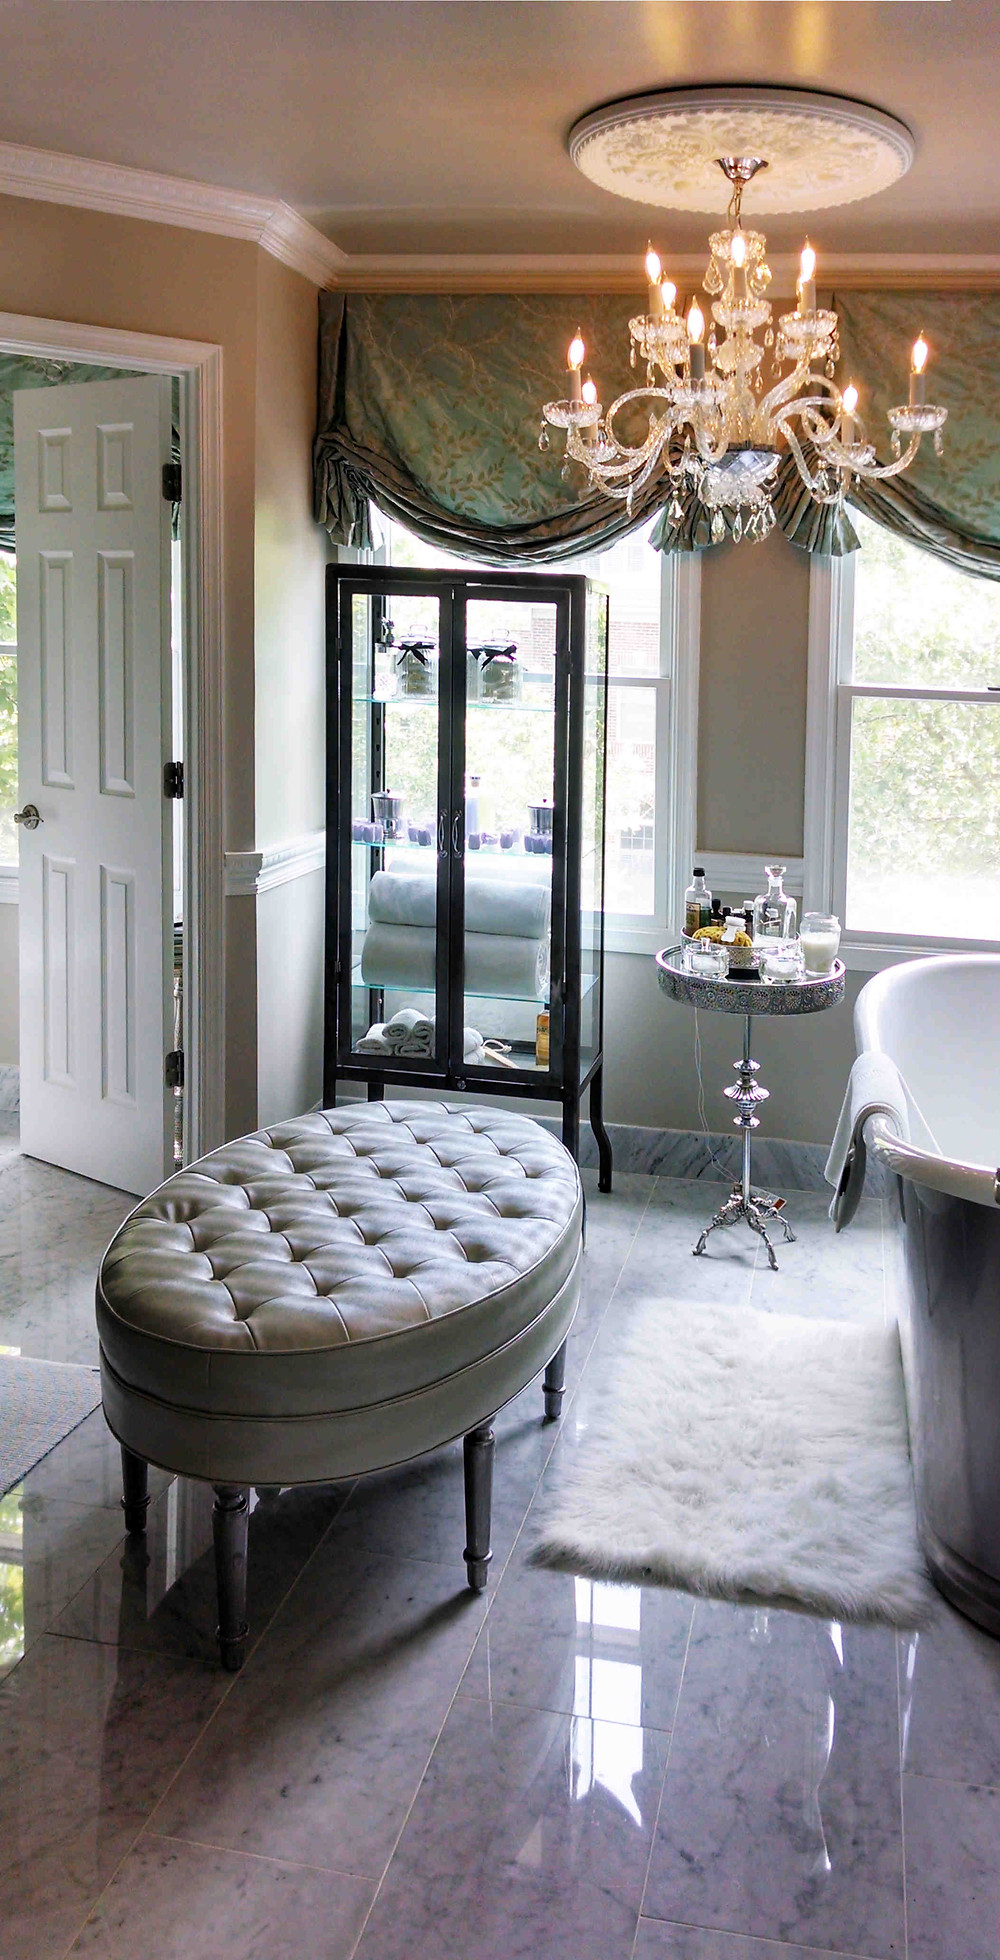 A beautiful formal and traditional bathroom.